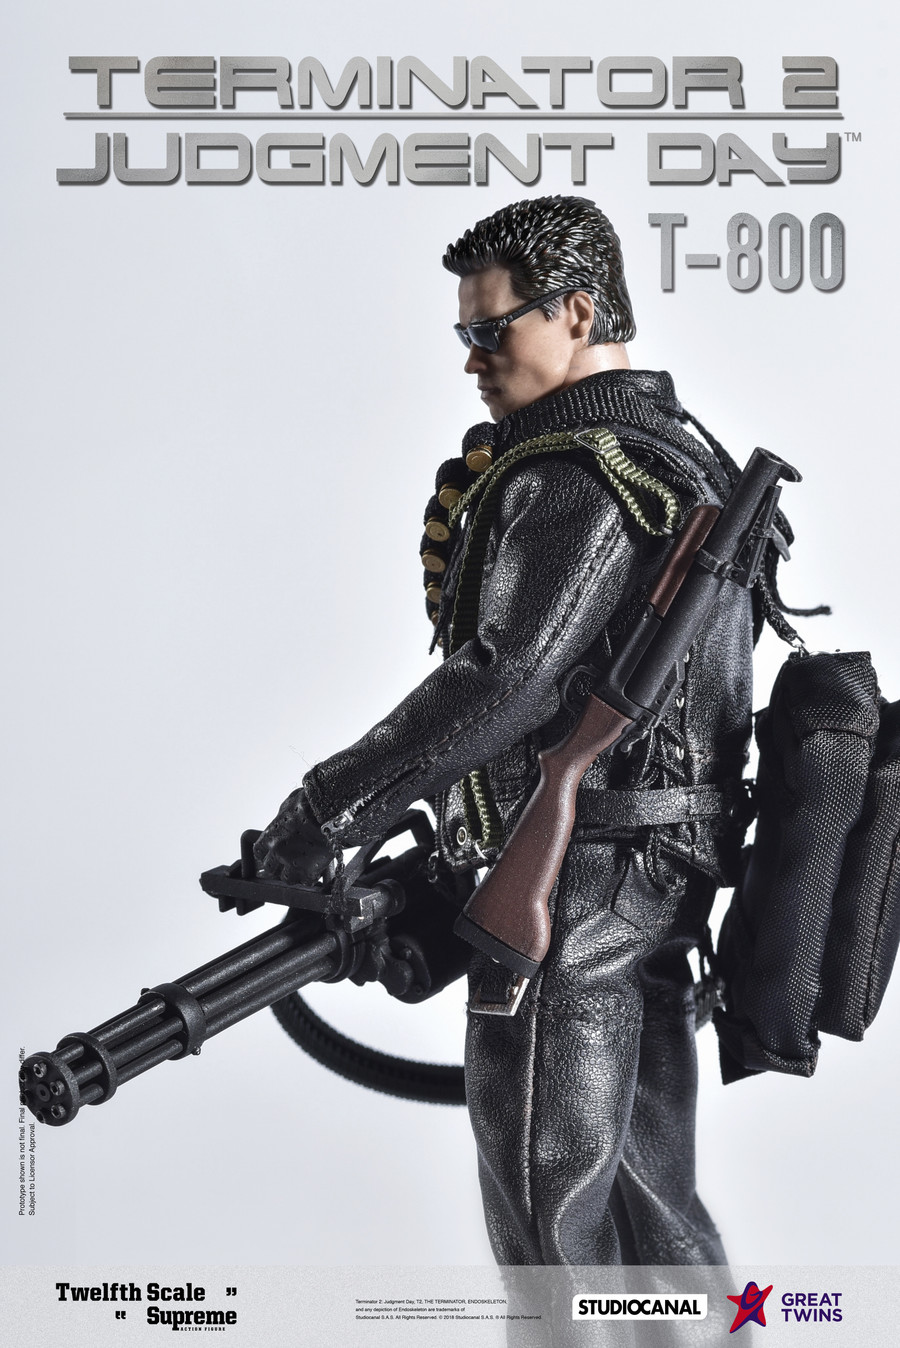 Great Twins - 1/12 Terminator 2: Judgement Day – T-800